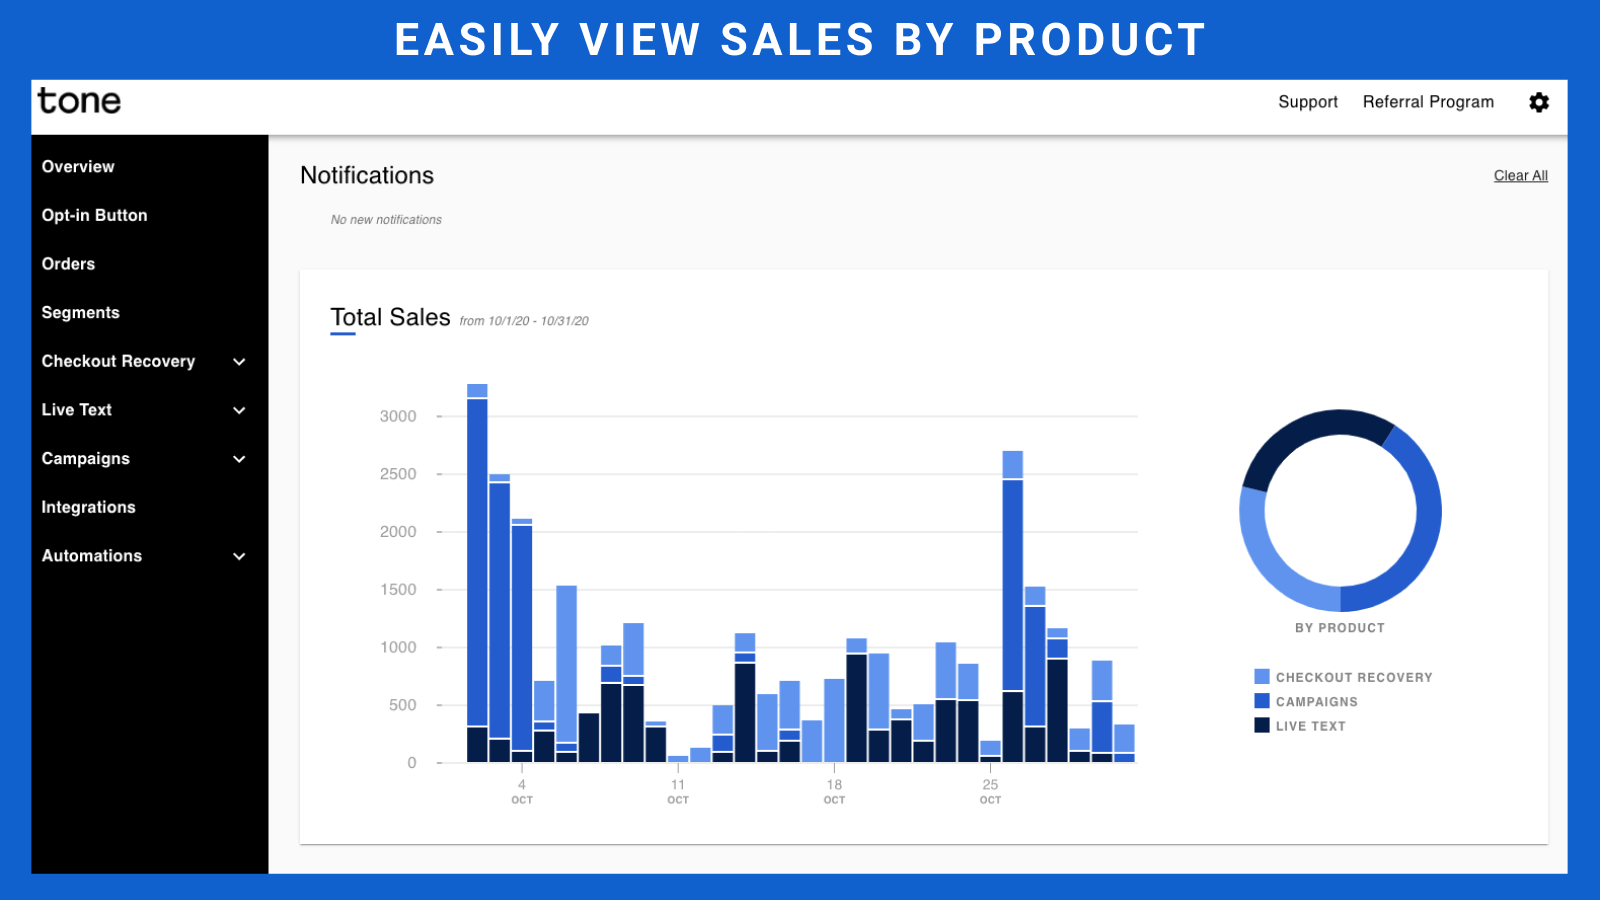 Tone Overview - Easily see sales by product